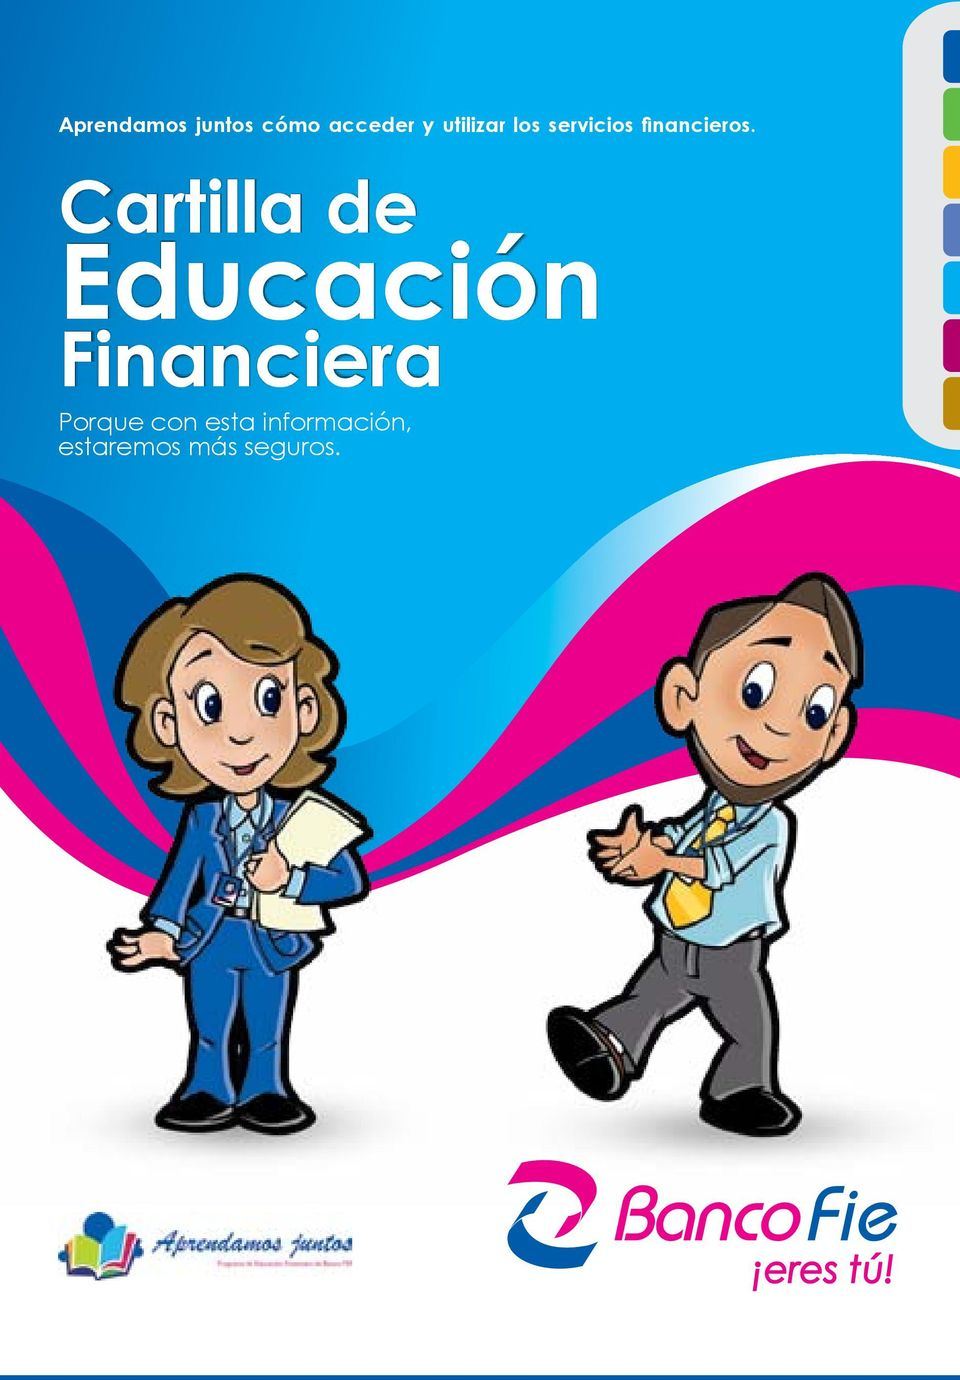 Cartilla de Educación Financiera